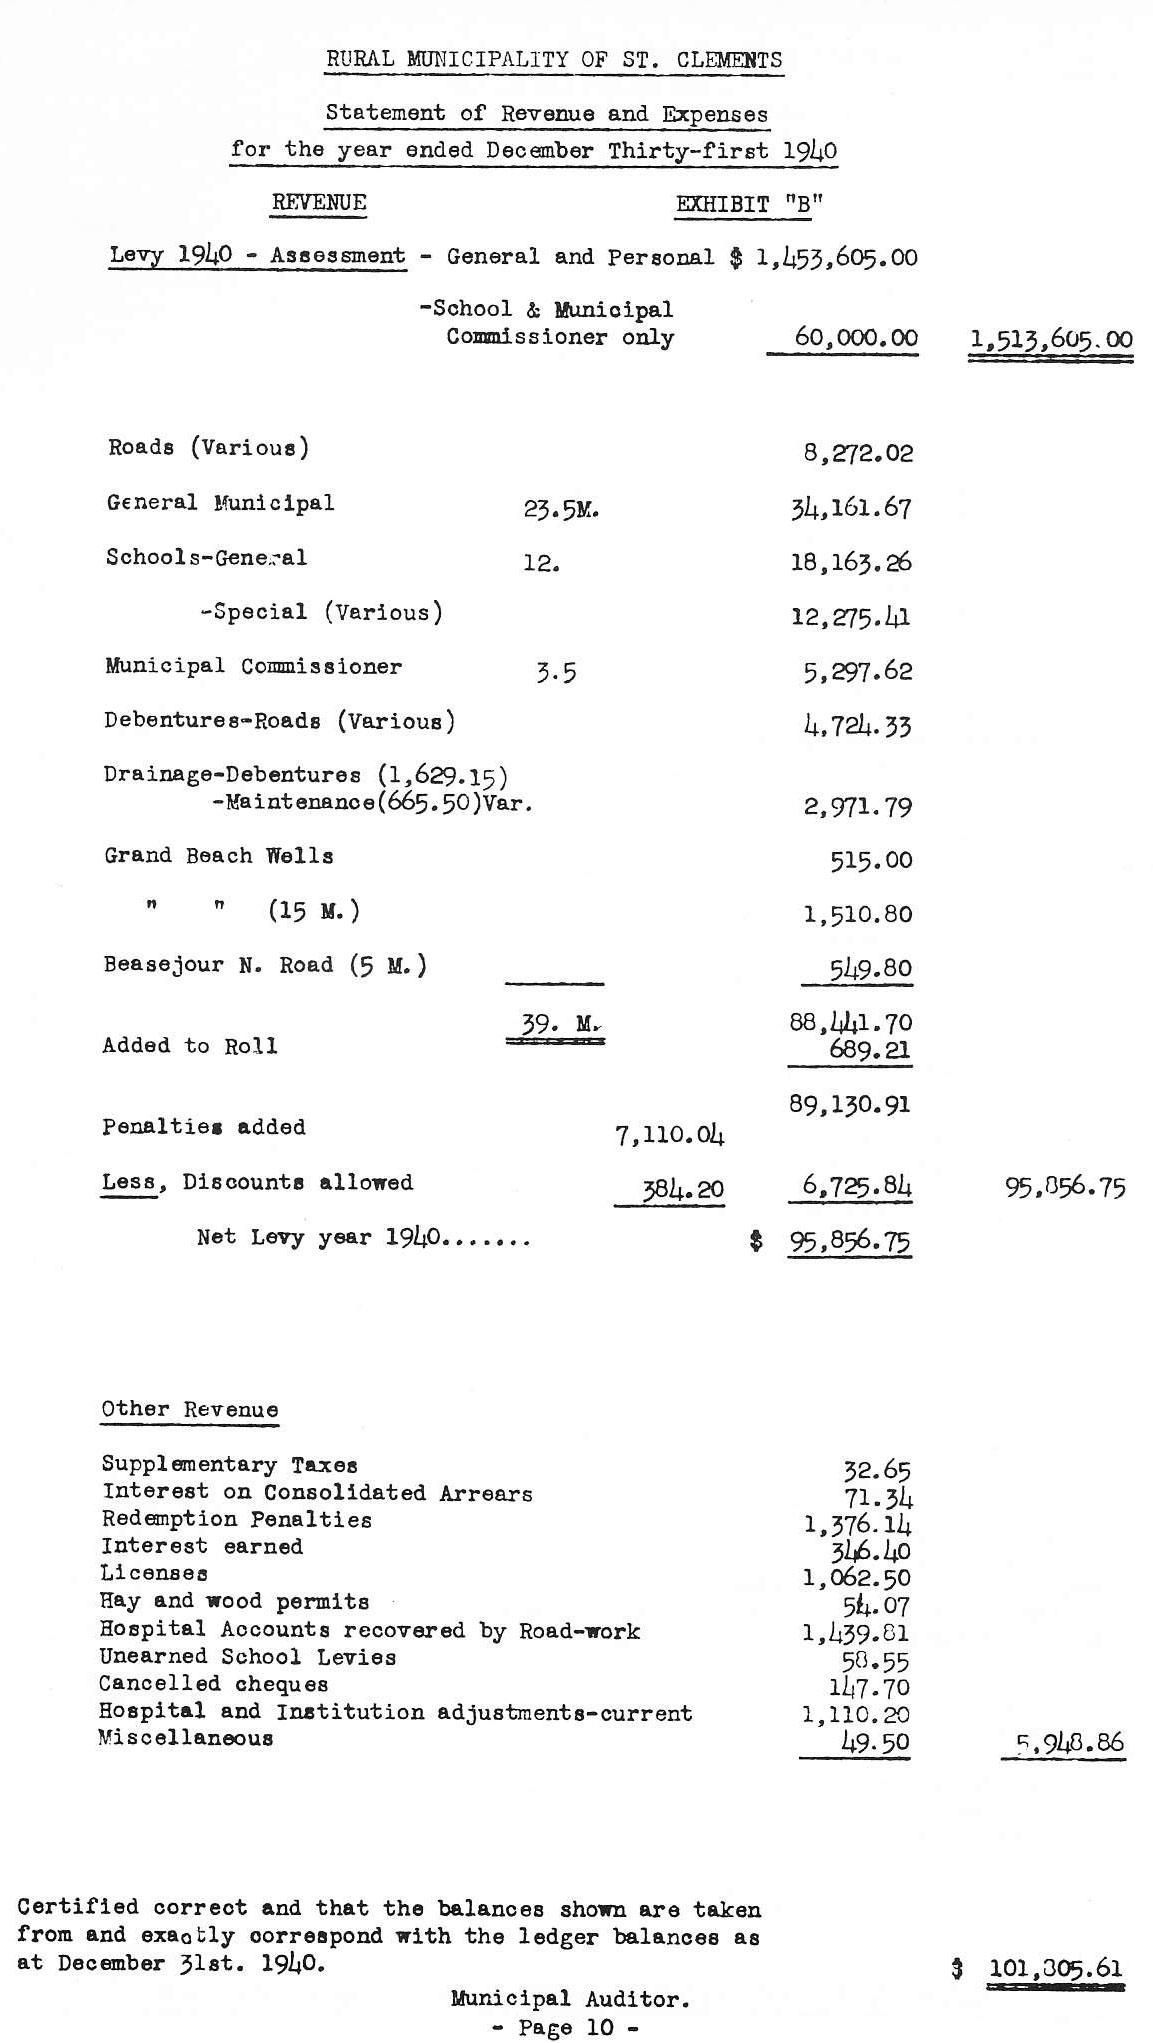 Financial Statement 1940 page 2